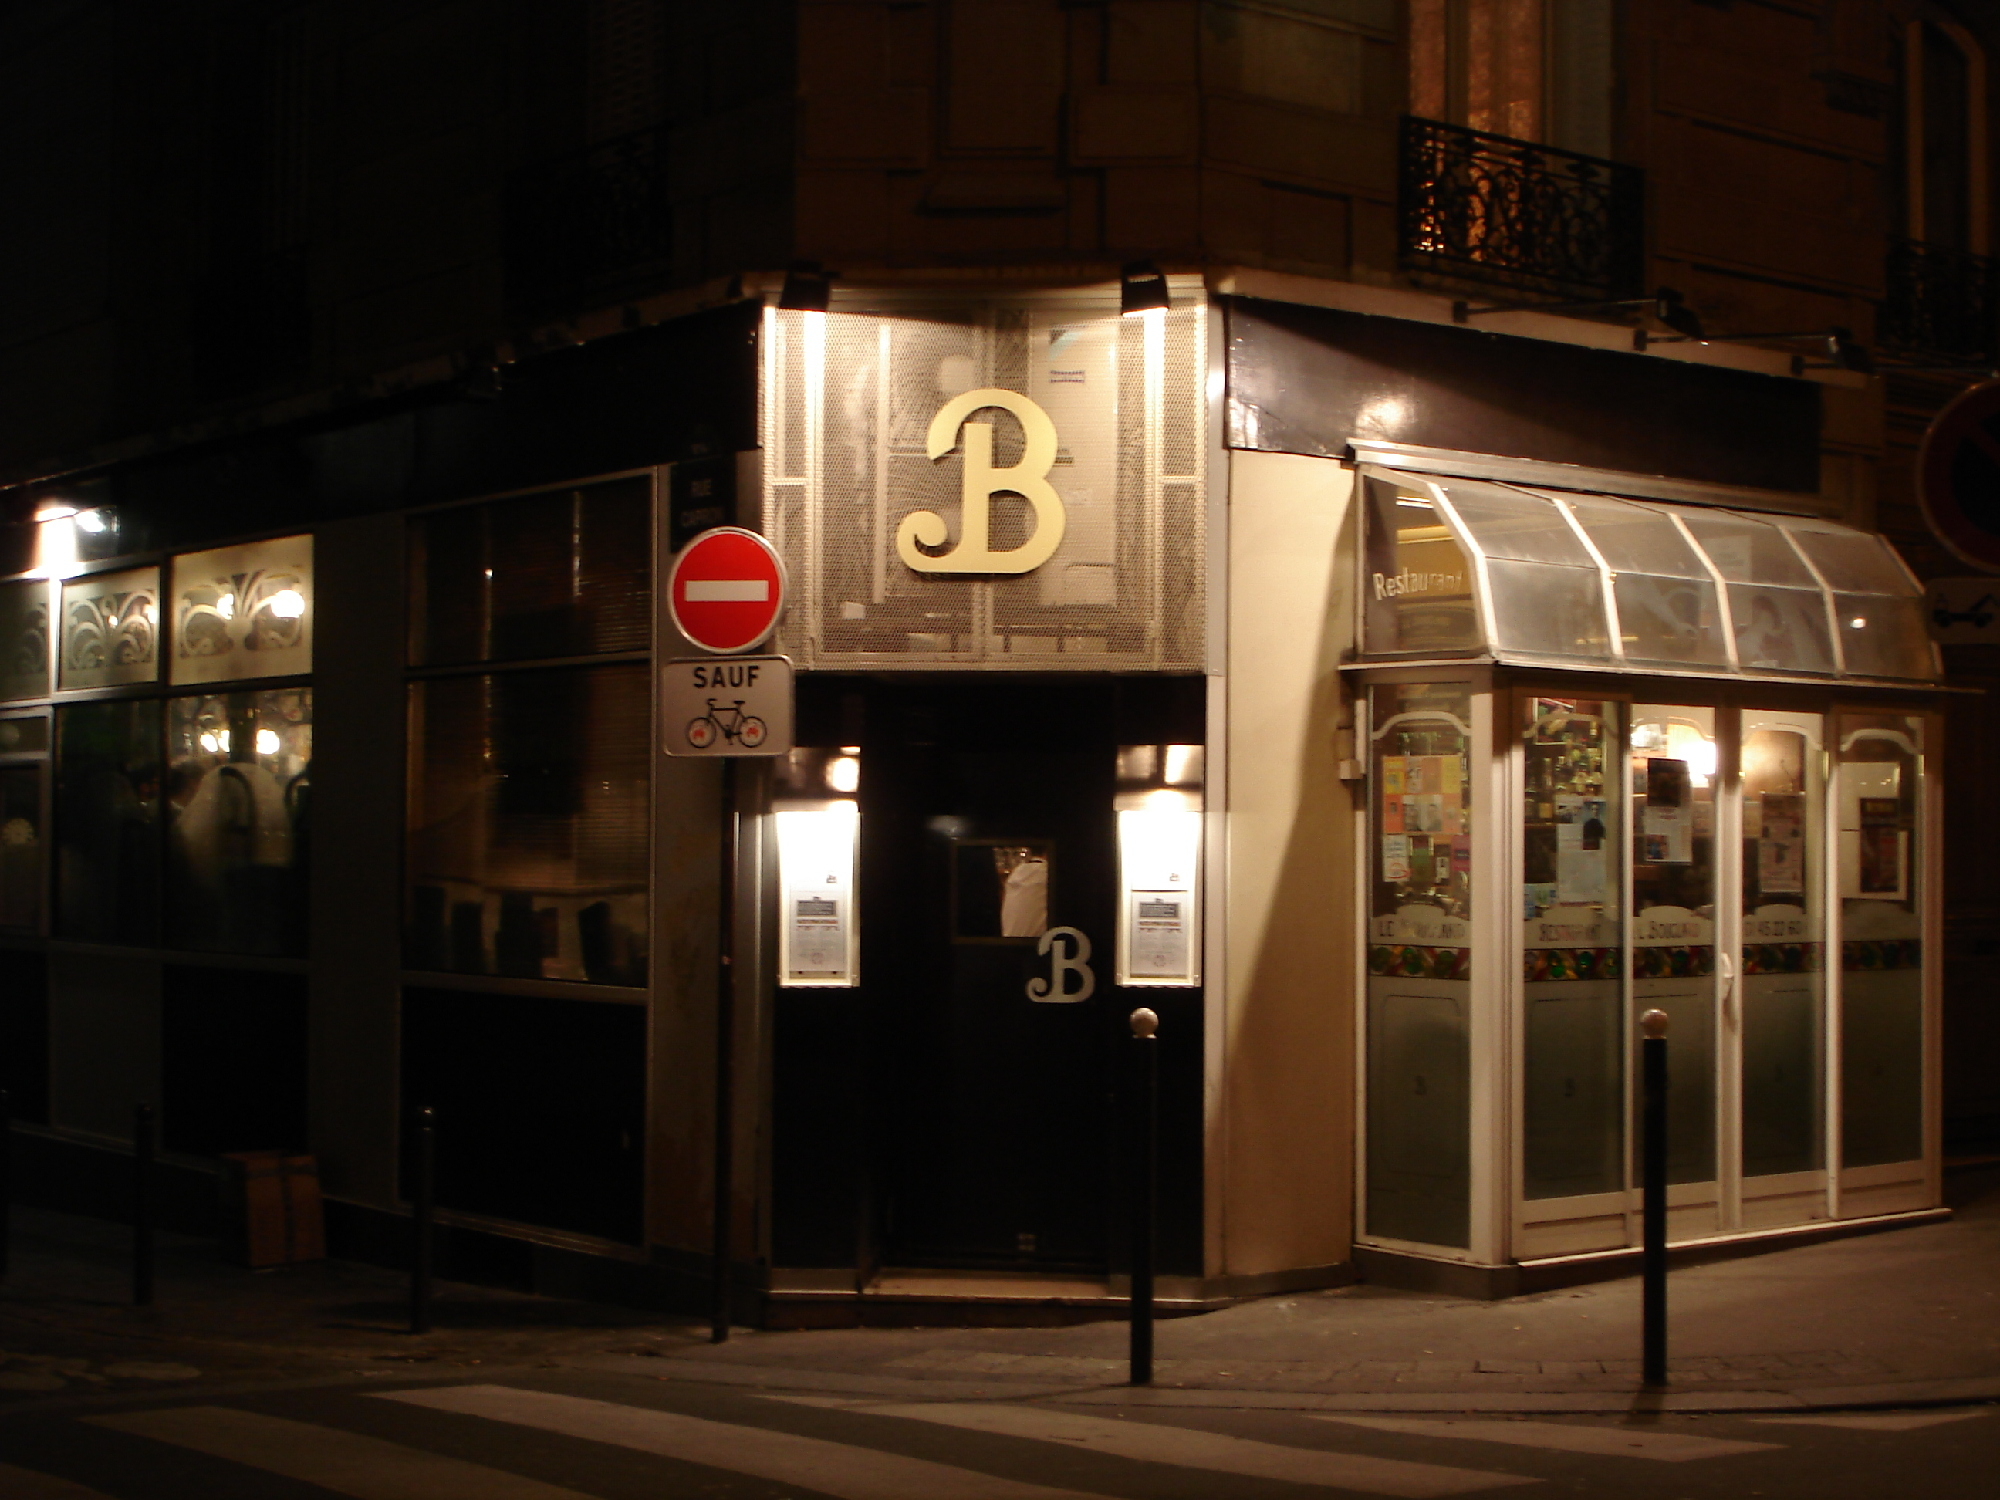 Restaurants montmartre time out paris for Restaurant miroir montmartre